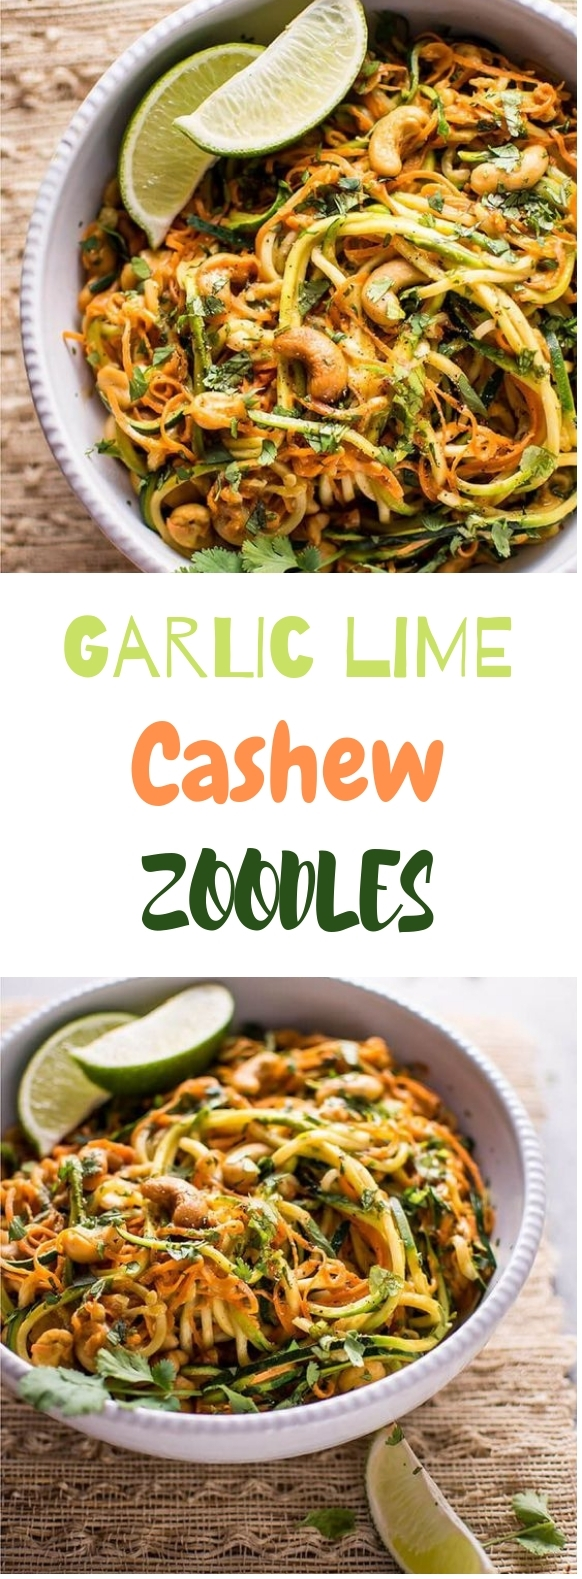 Garlic Lime Cashew Zoodles #veganmeal #healthyrecipe